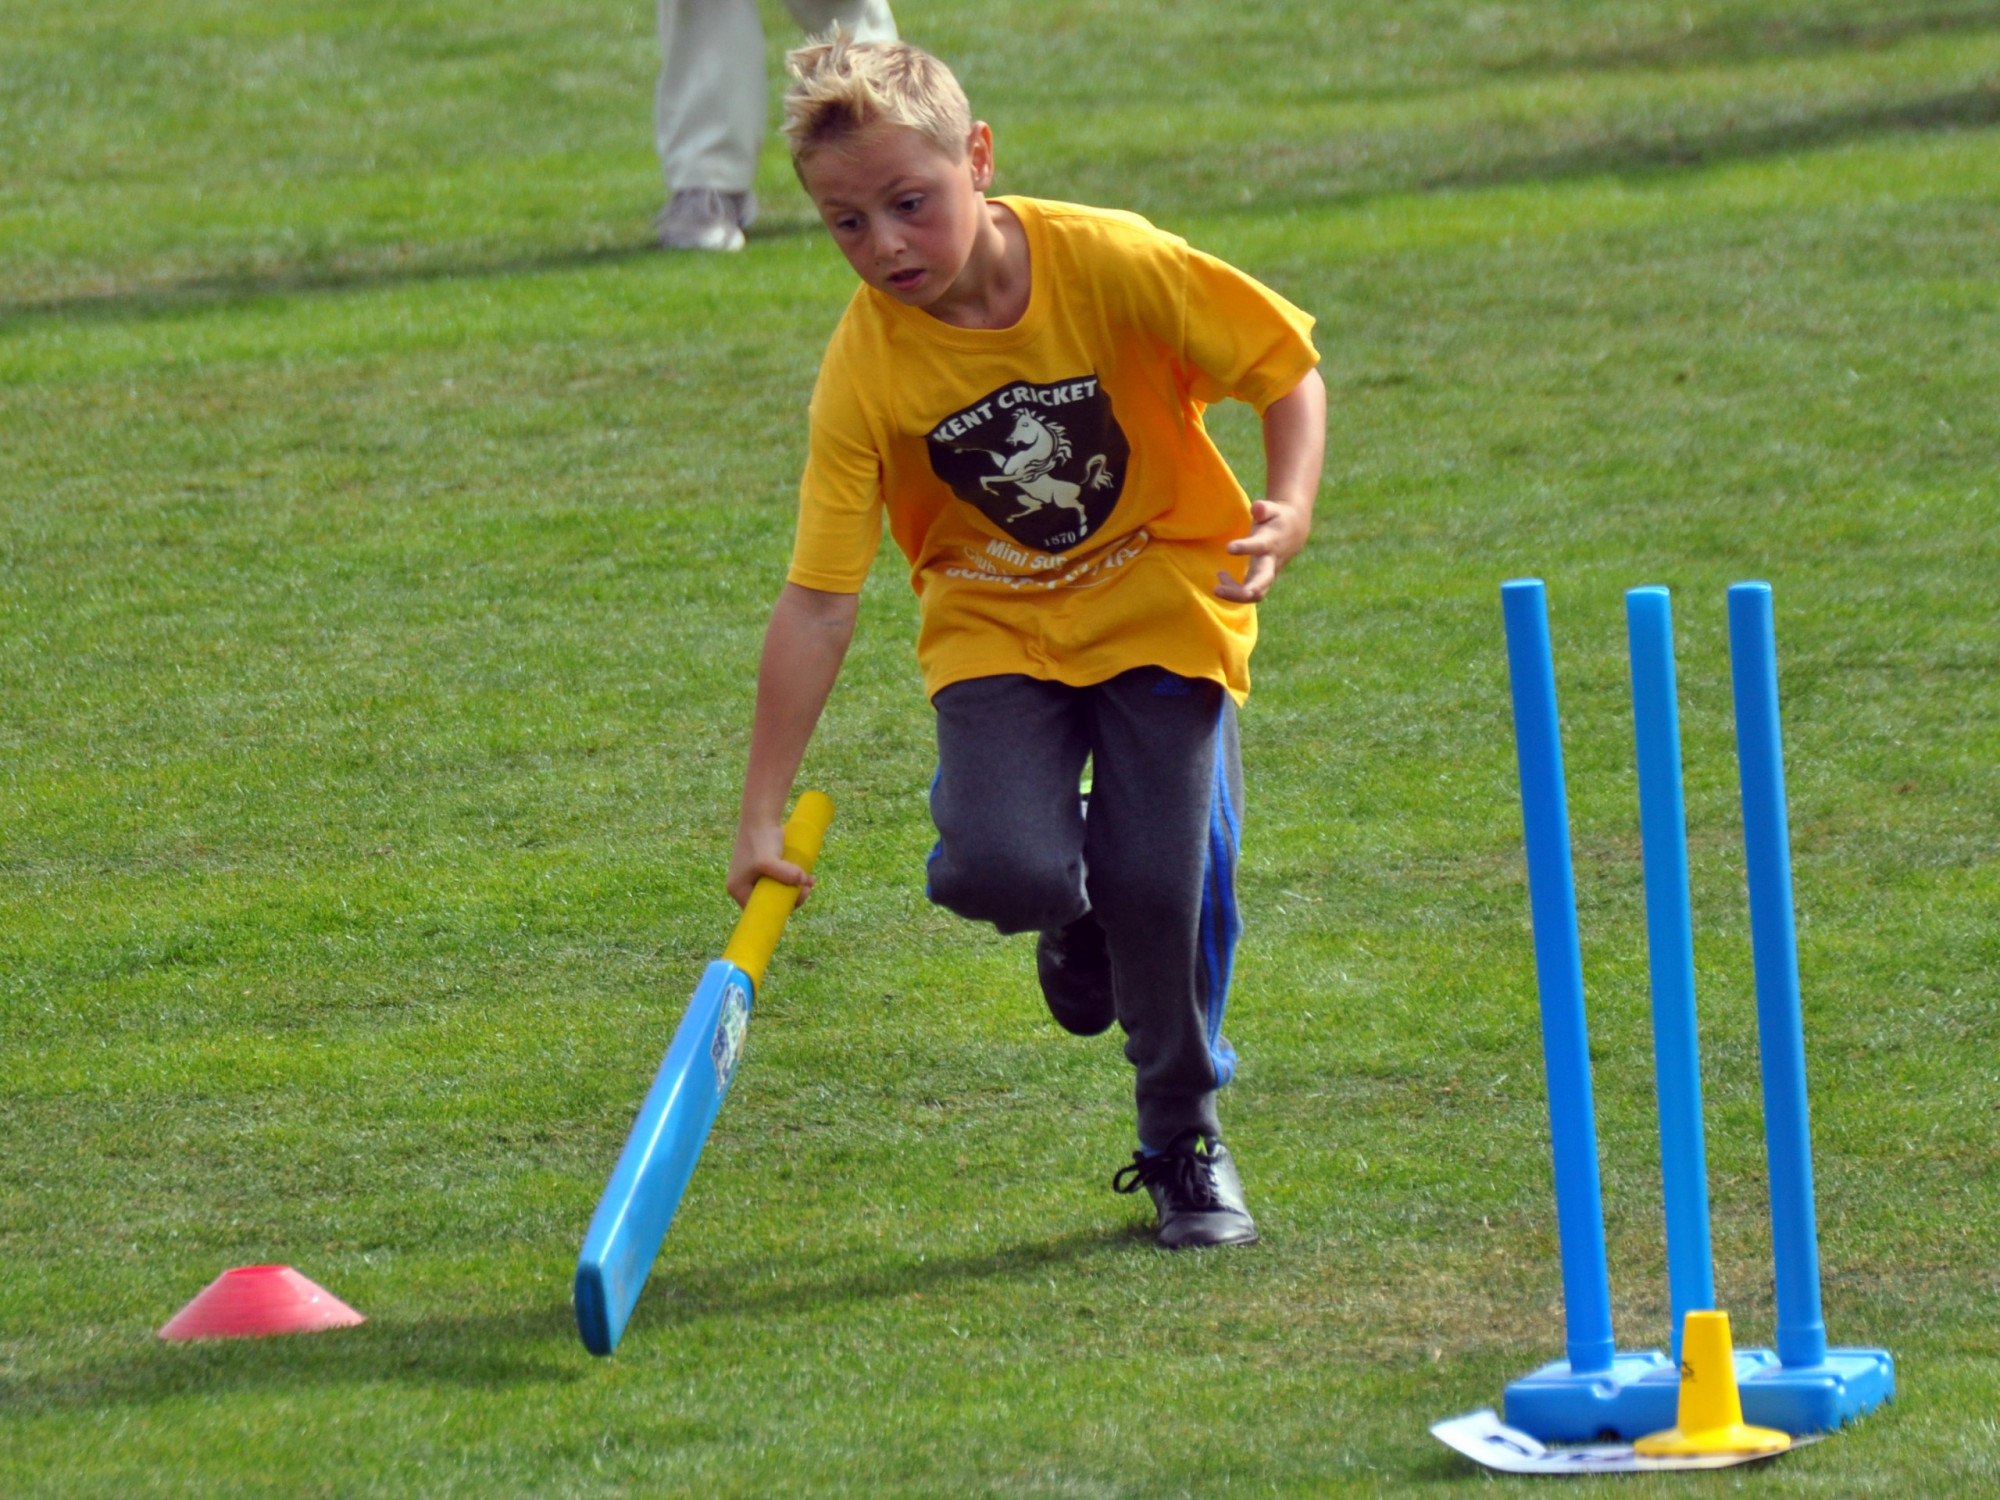 Kent County Cricket Club Mini Super 8s school event